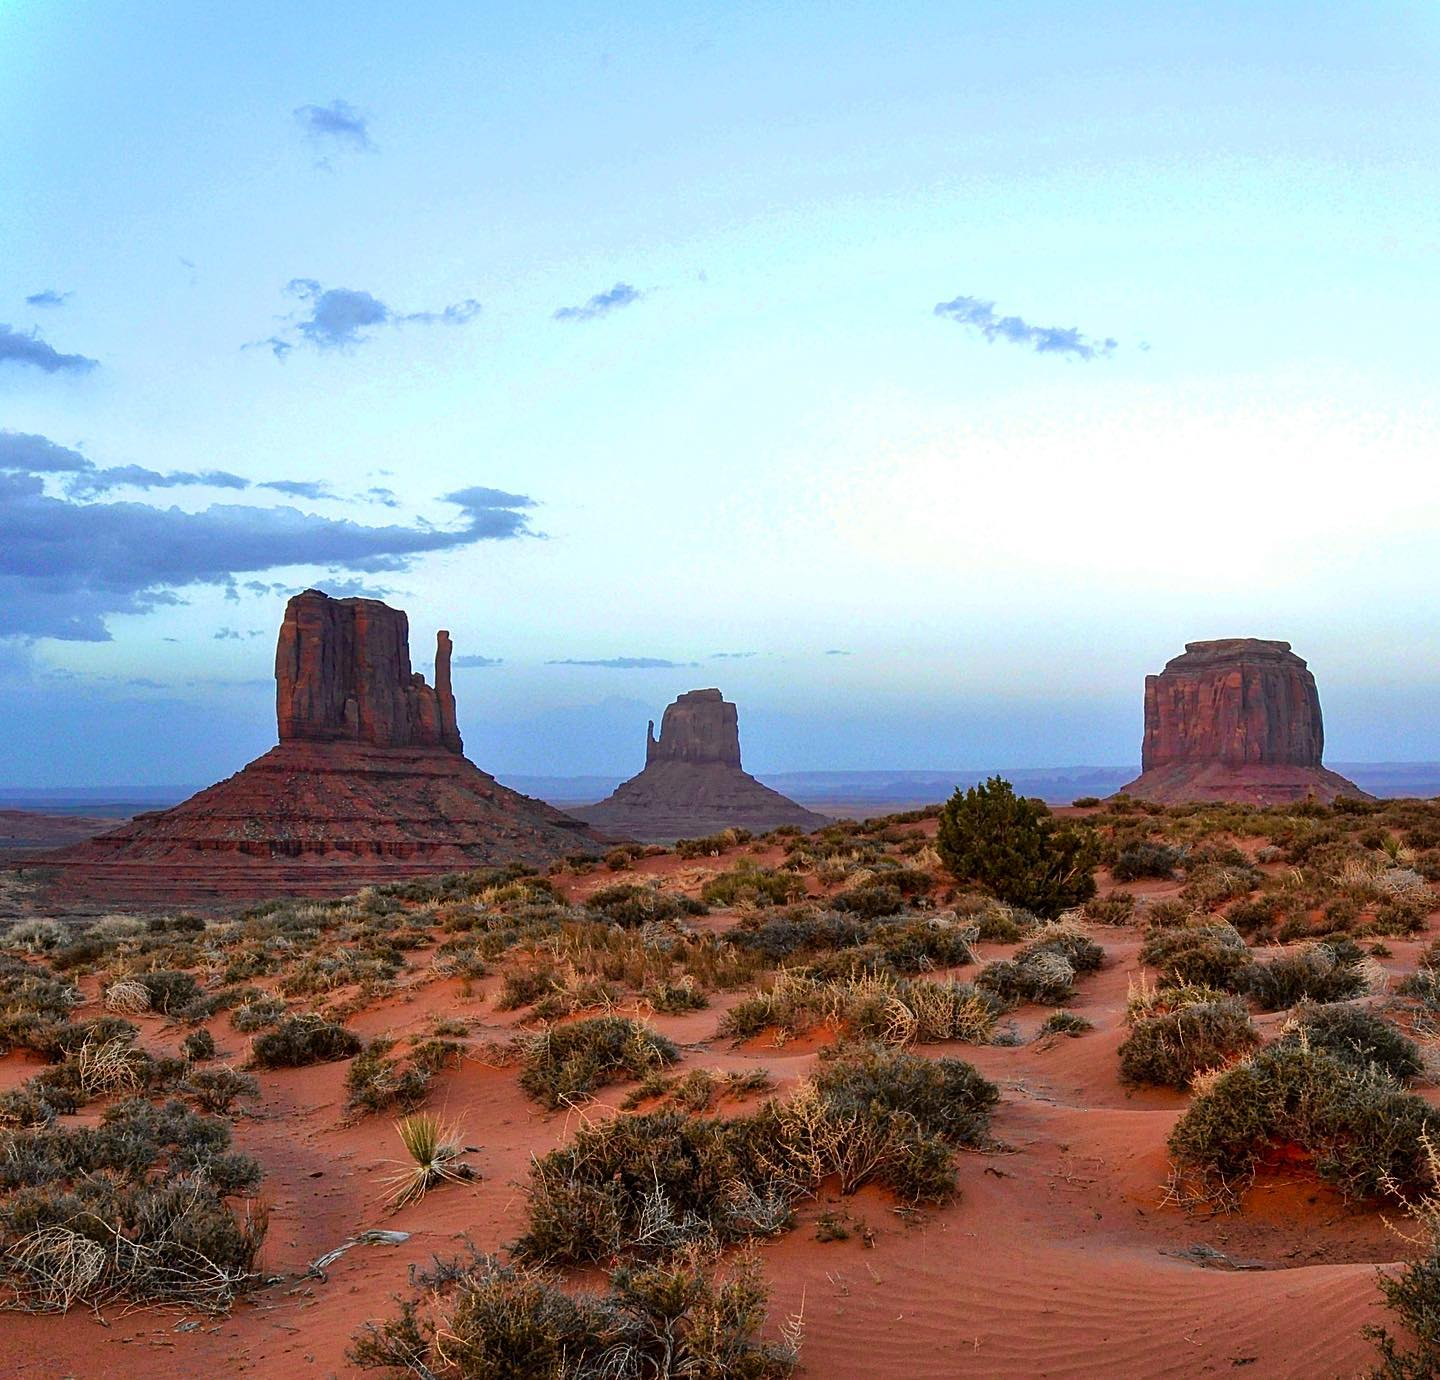 Monument Valley, Arizona/Utah  From left to right: West Mitten Butte, East Mitten Butte and Merrick Butte  #usa #us #usatravel #usatravels #usatrip #usareisen #usaroadtrip #traveltheworld #utahunique #arizona #utah #monumentvalley #navajotribalpark #unitedstates #nature #naturephotography #naturelovers #naturfotografie #naturepic #natureperfection #mustseeplaces #travelcouple #teavelstoke #travelenthusiast #travelawesome #picoftheday #travelphotography #travelblogger #exploremore #passionpassport